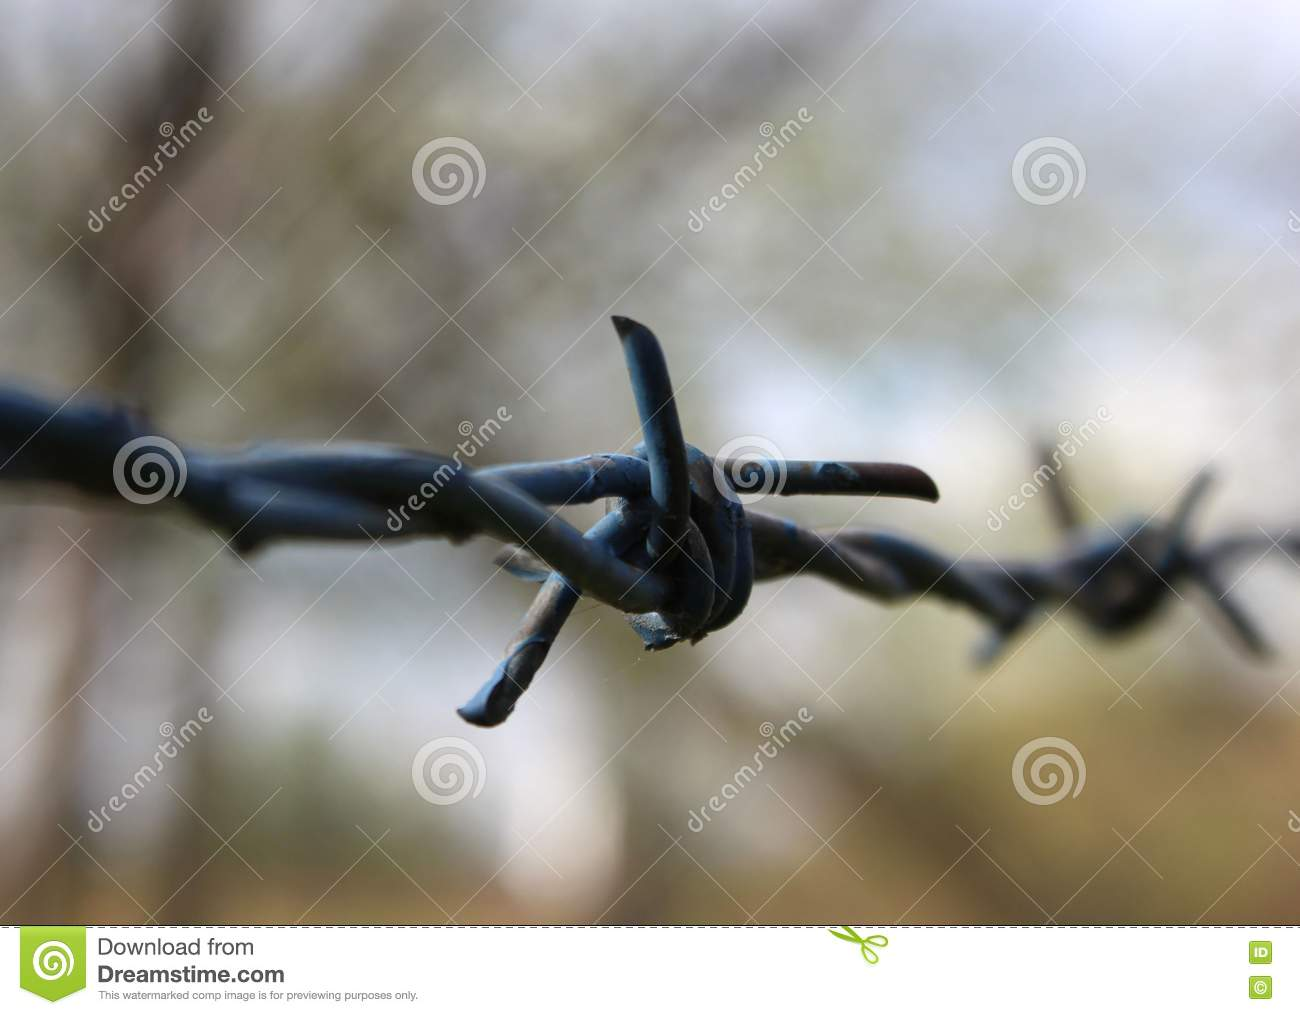 Barbed wire knot stock image. Image of wire, rusted, close - 79541523